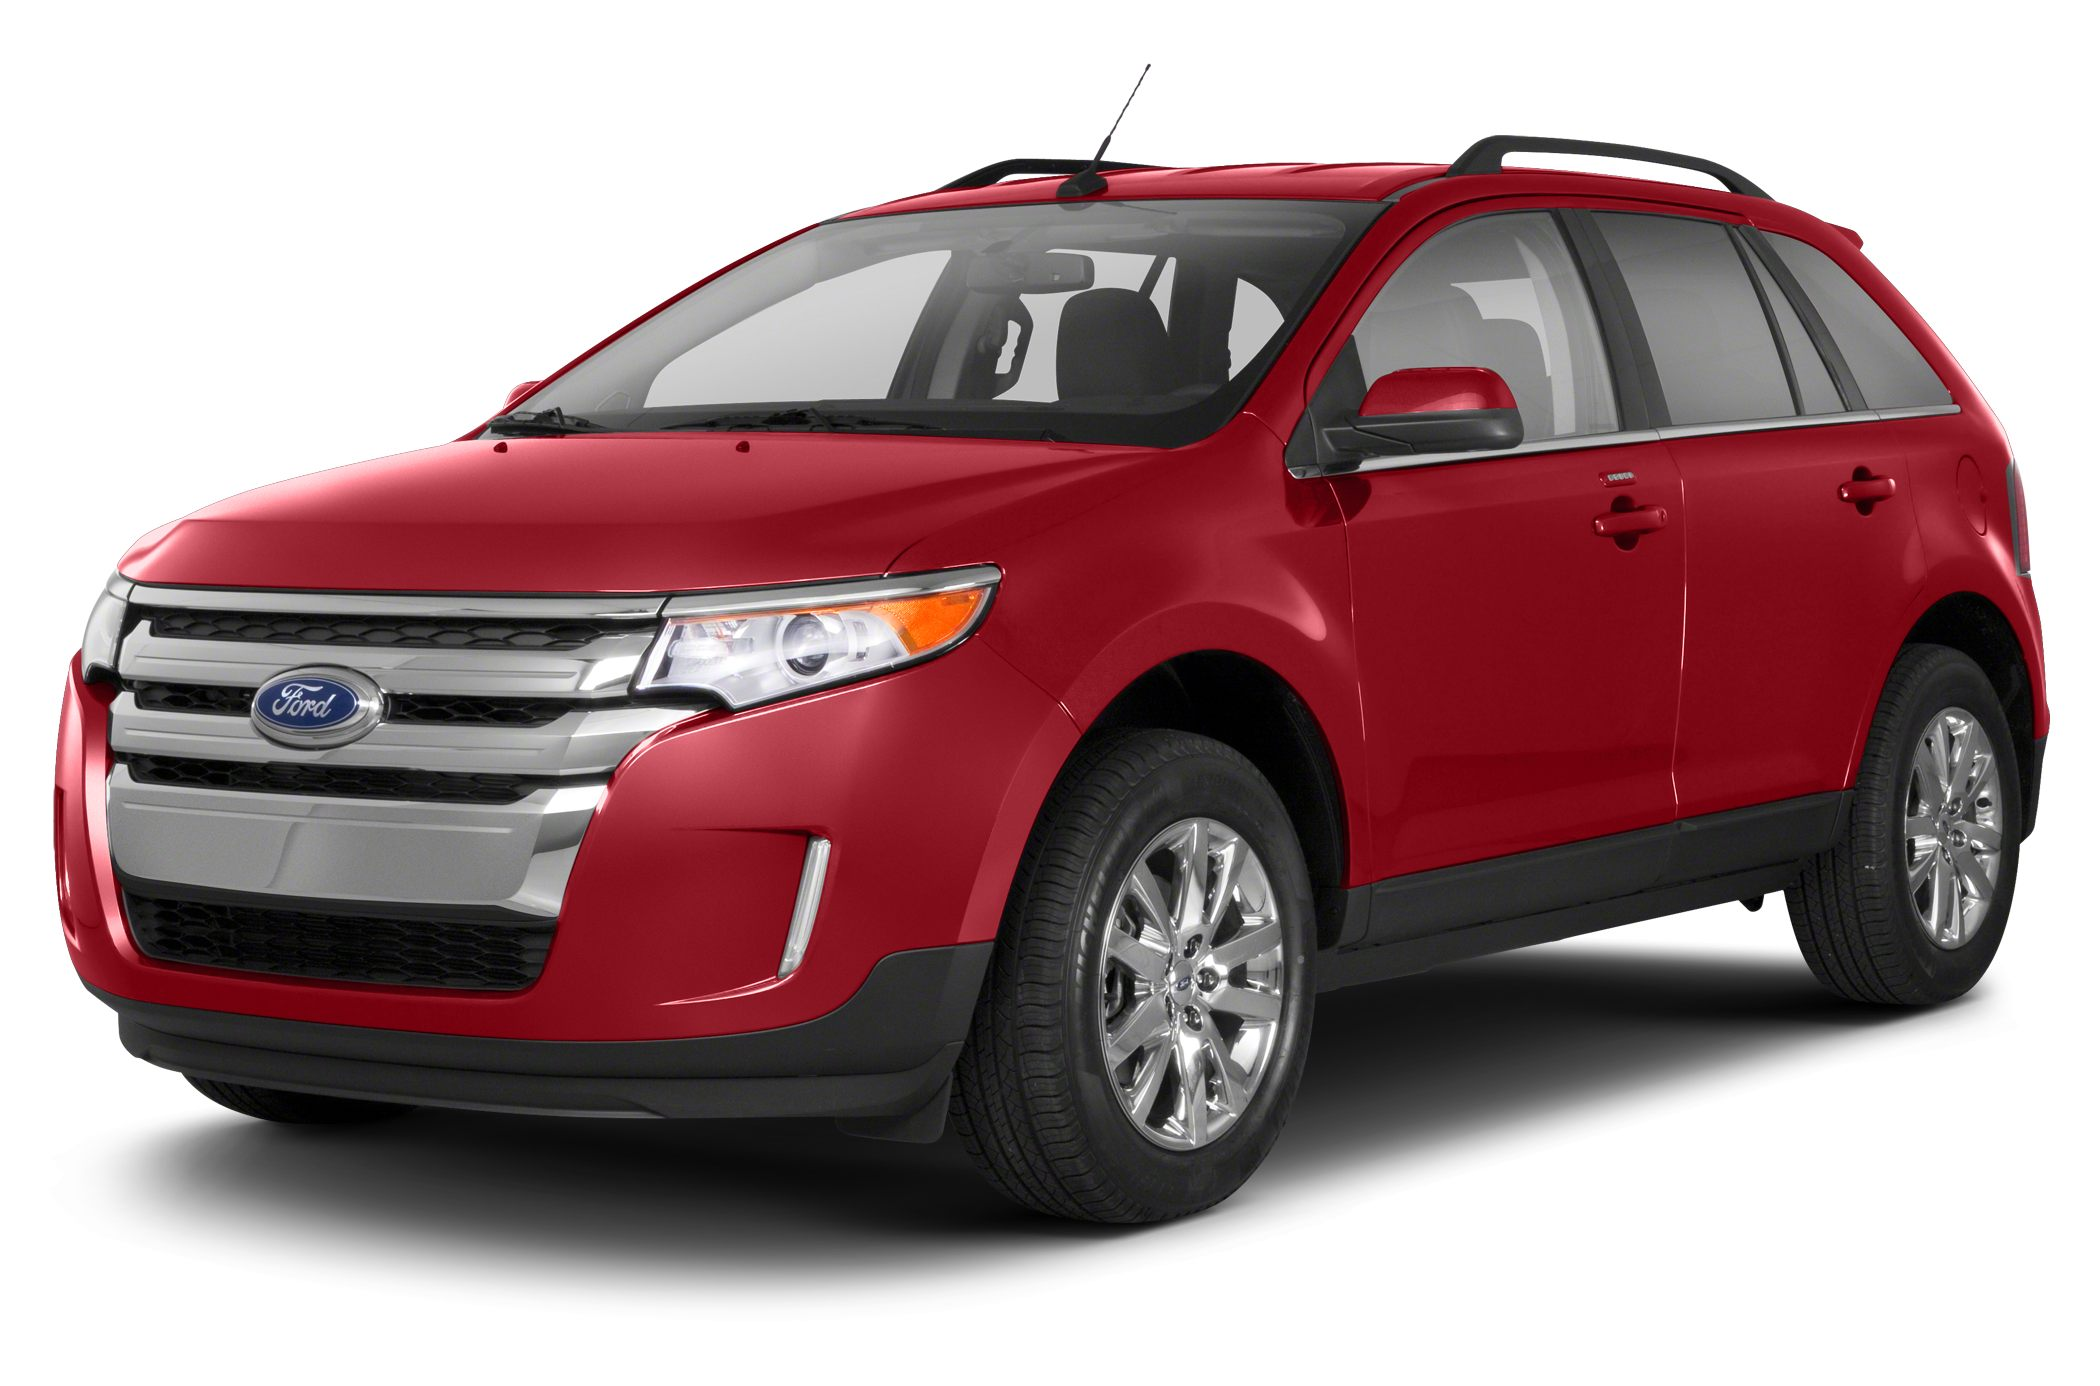 2013 Ford Edge SE SUV for sale in Waxahachie for $17,995 with 61,518 miles